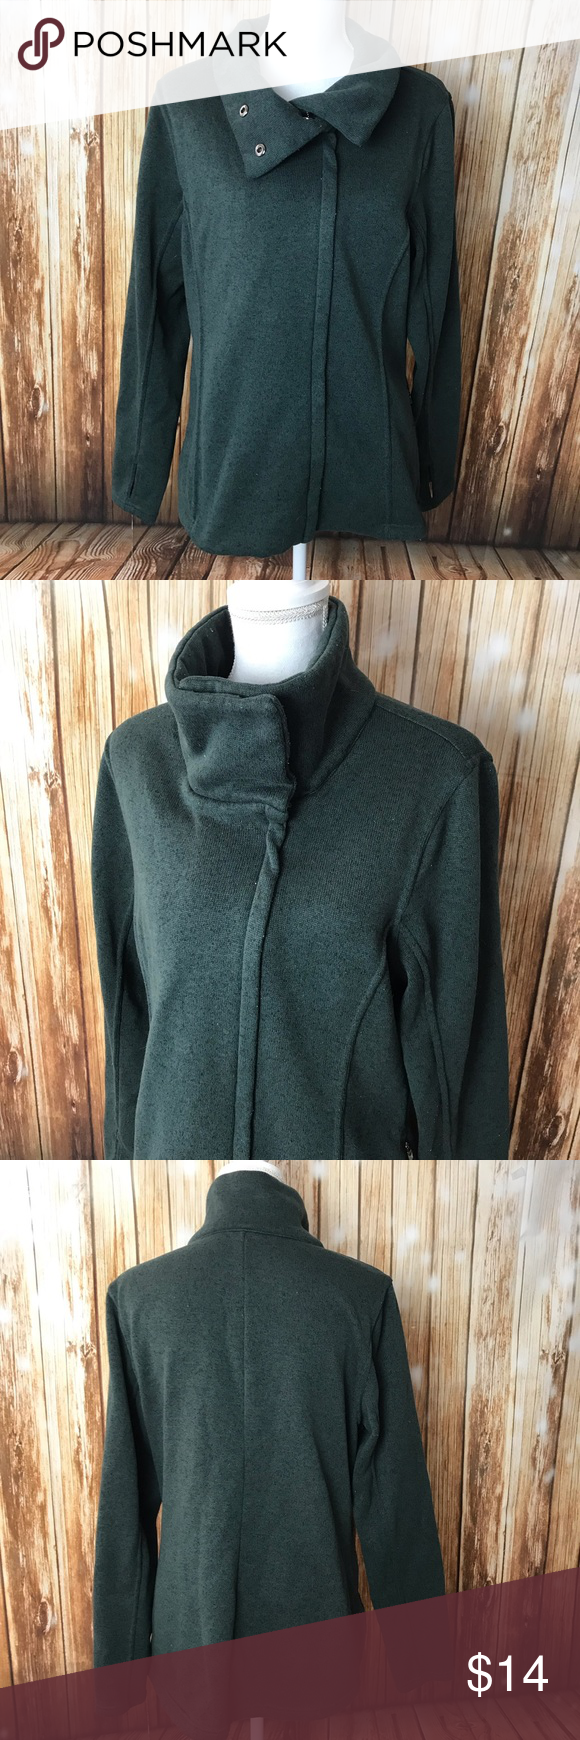 Green athletic zip jacket cowl neck Old Navy Old Navy